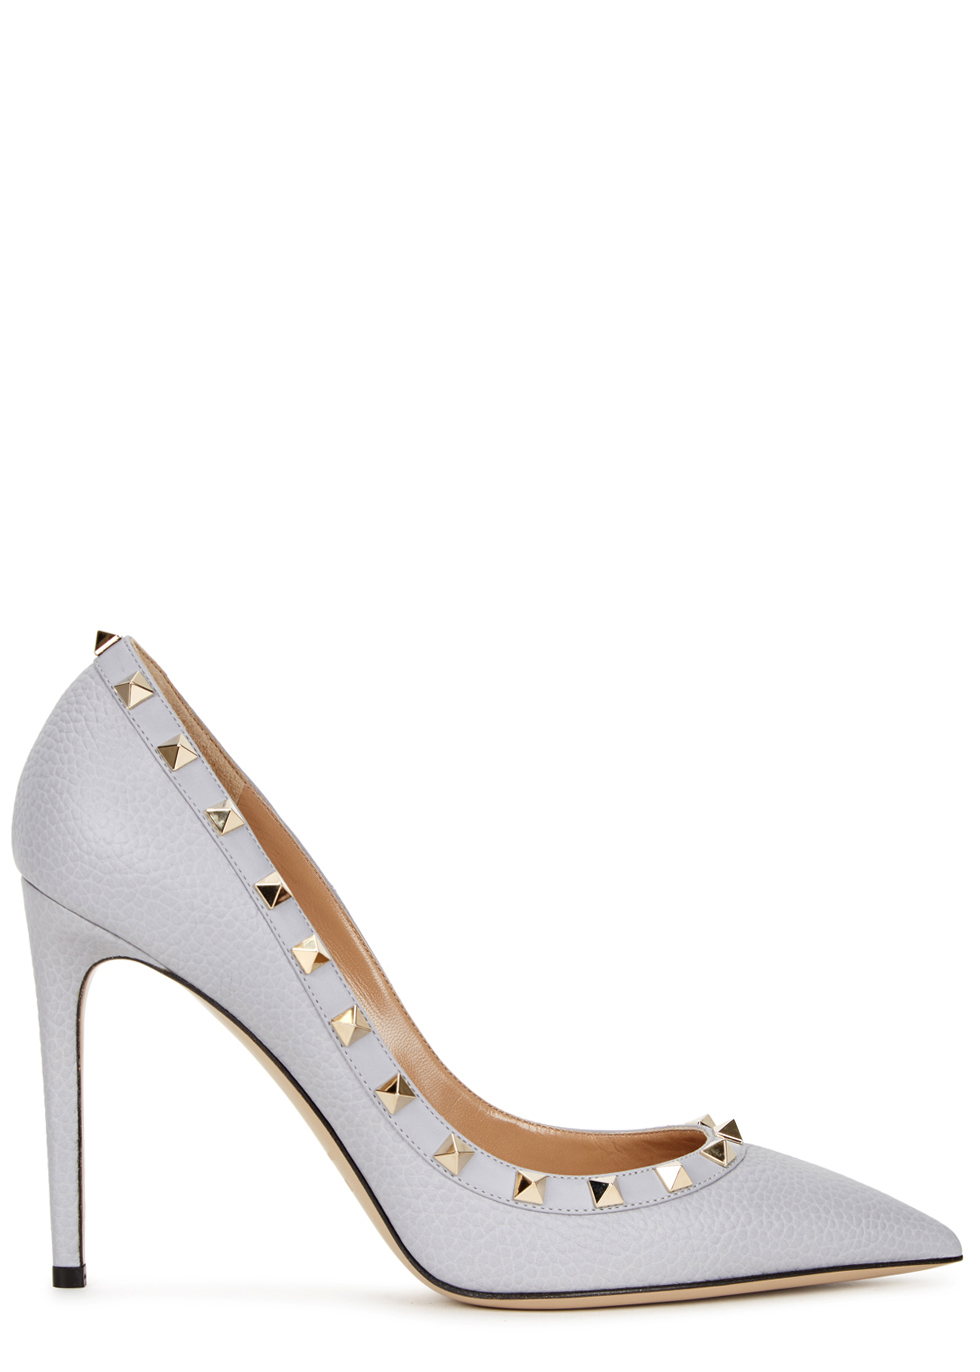 Rockstud 100 Pale Blue Leather Pumps - predominant colour: pale blue; occasions: evening; material: leather; heel height: high; embellishment: studs; heel: stiletto; toe: pointed toe; style: courts; finish: plain; pattern: plain; season: a/w 2016; wardrobe: event